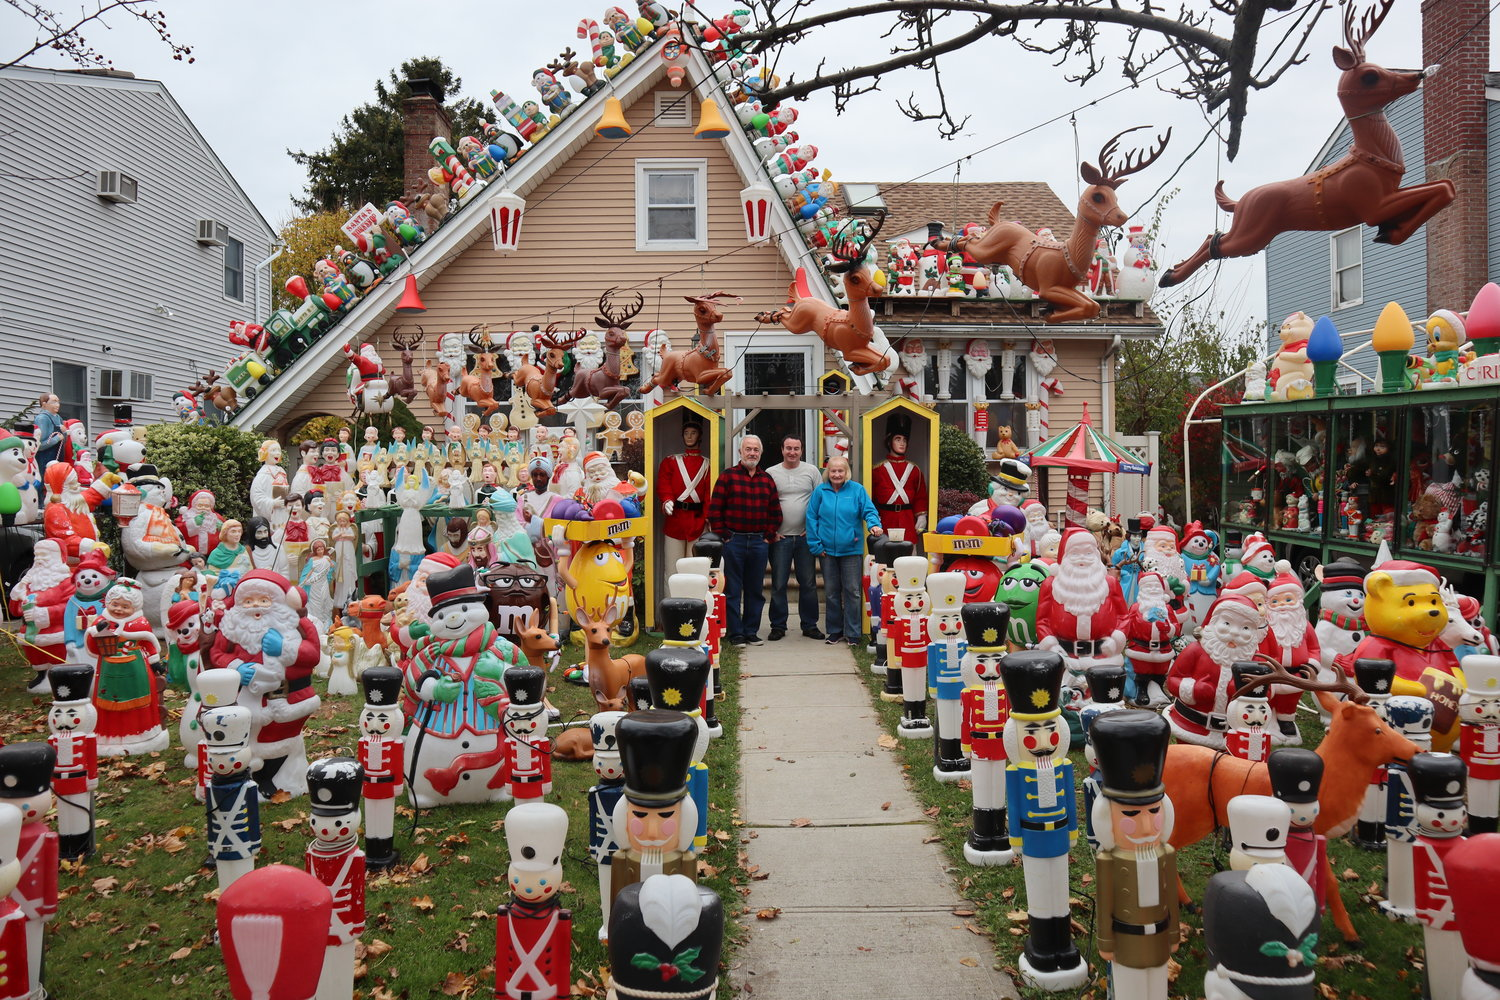 Long Island Houses Christmas Lights 2020 Merrick family's holiday lights hit TV | Herald Community